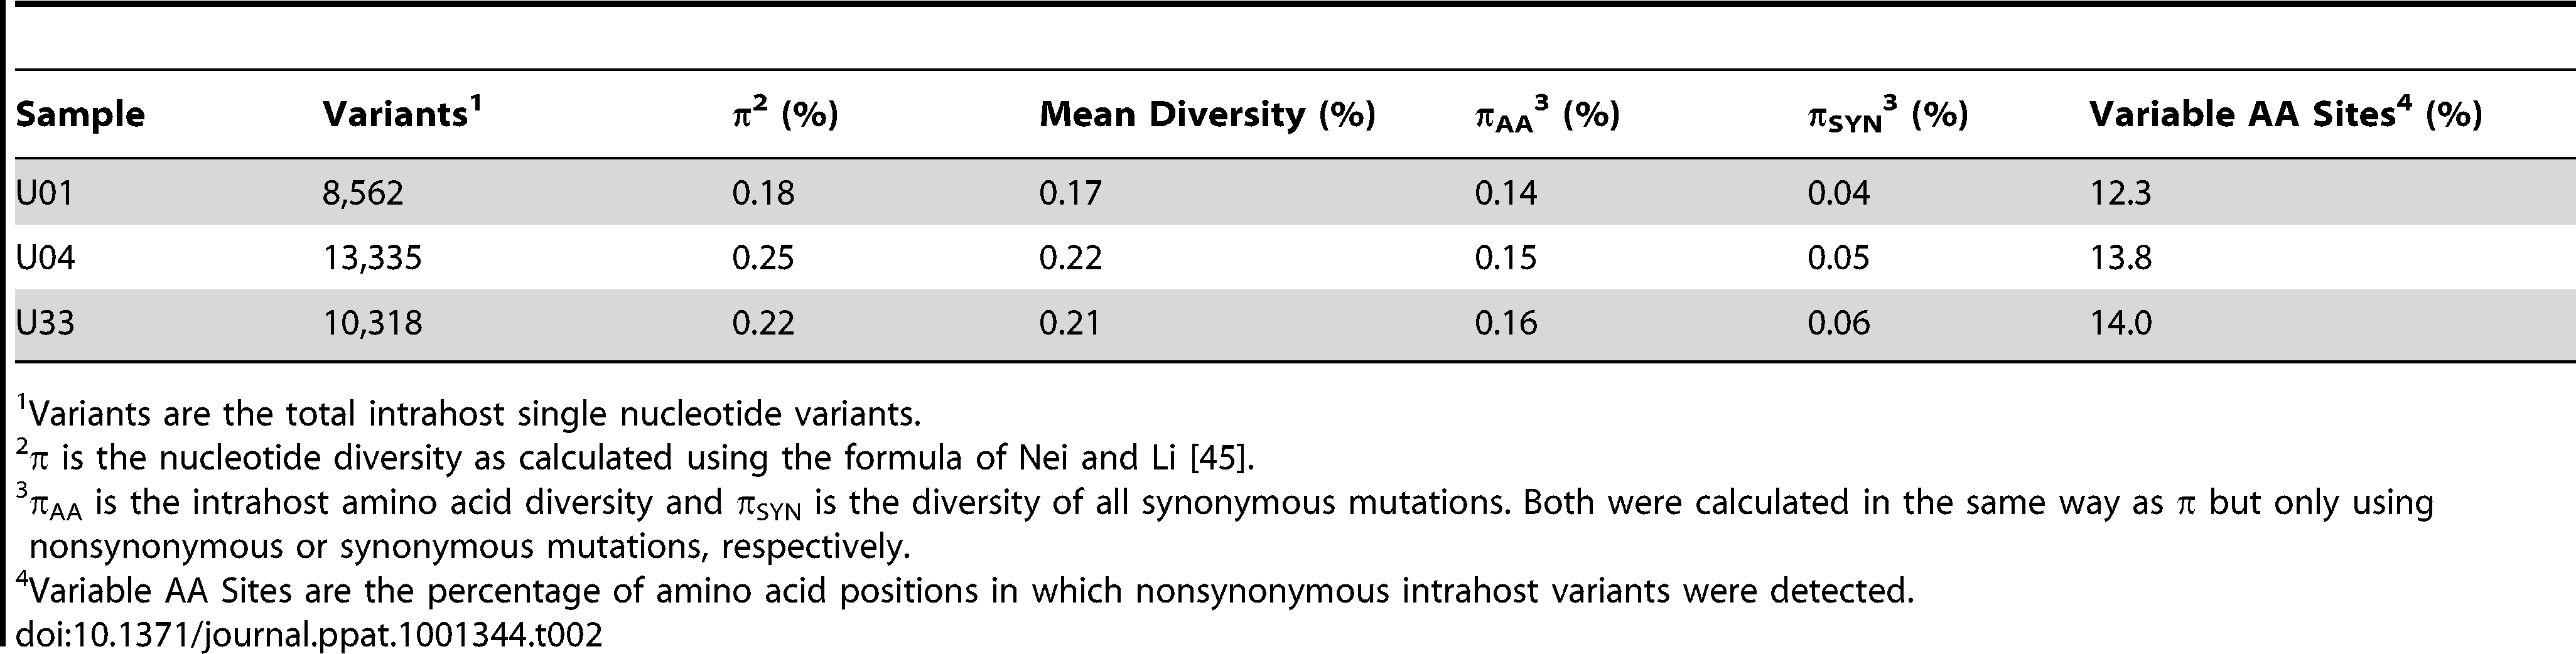 Intrahost diversity of hcmv populations in clinical samples: genome wide averages.